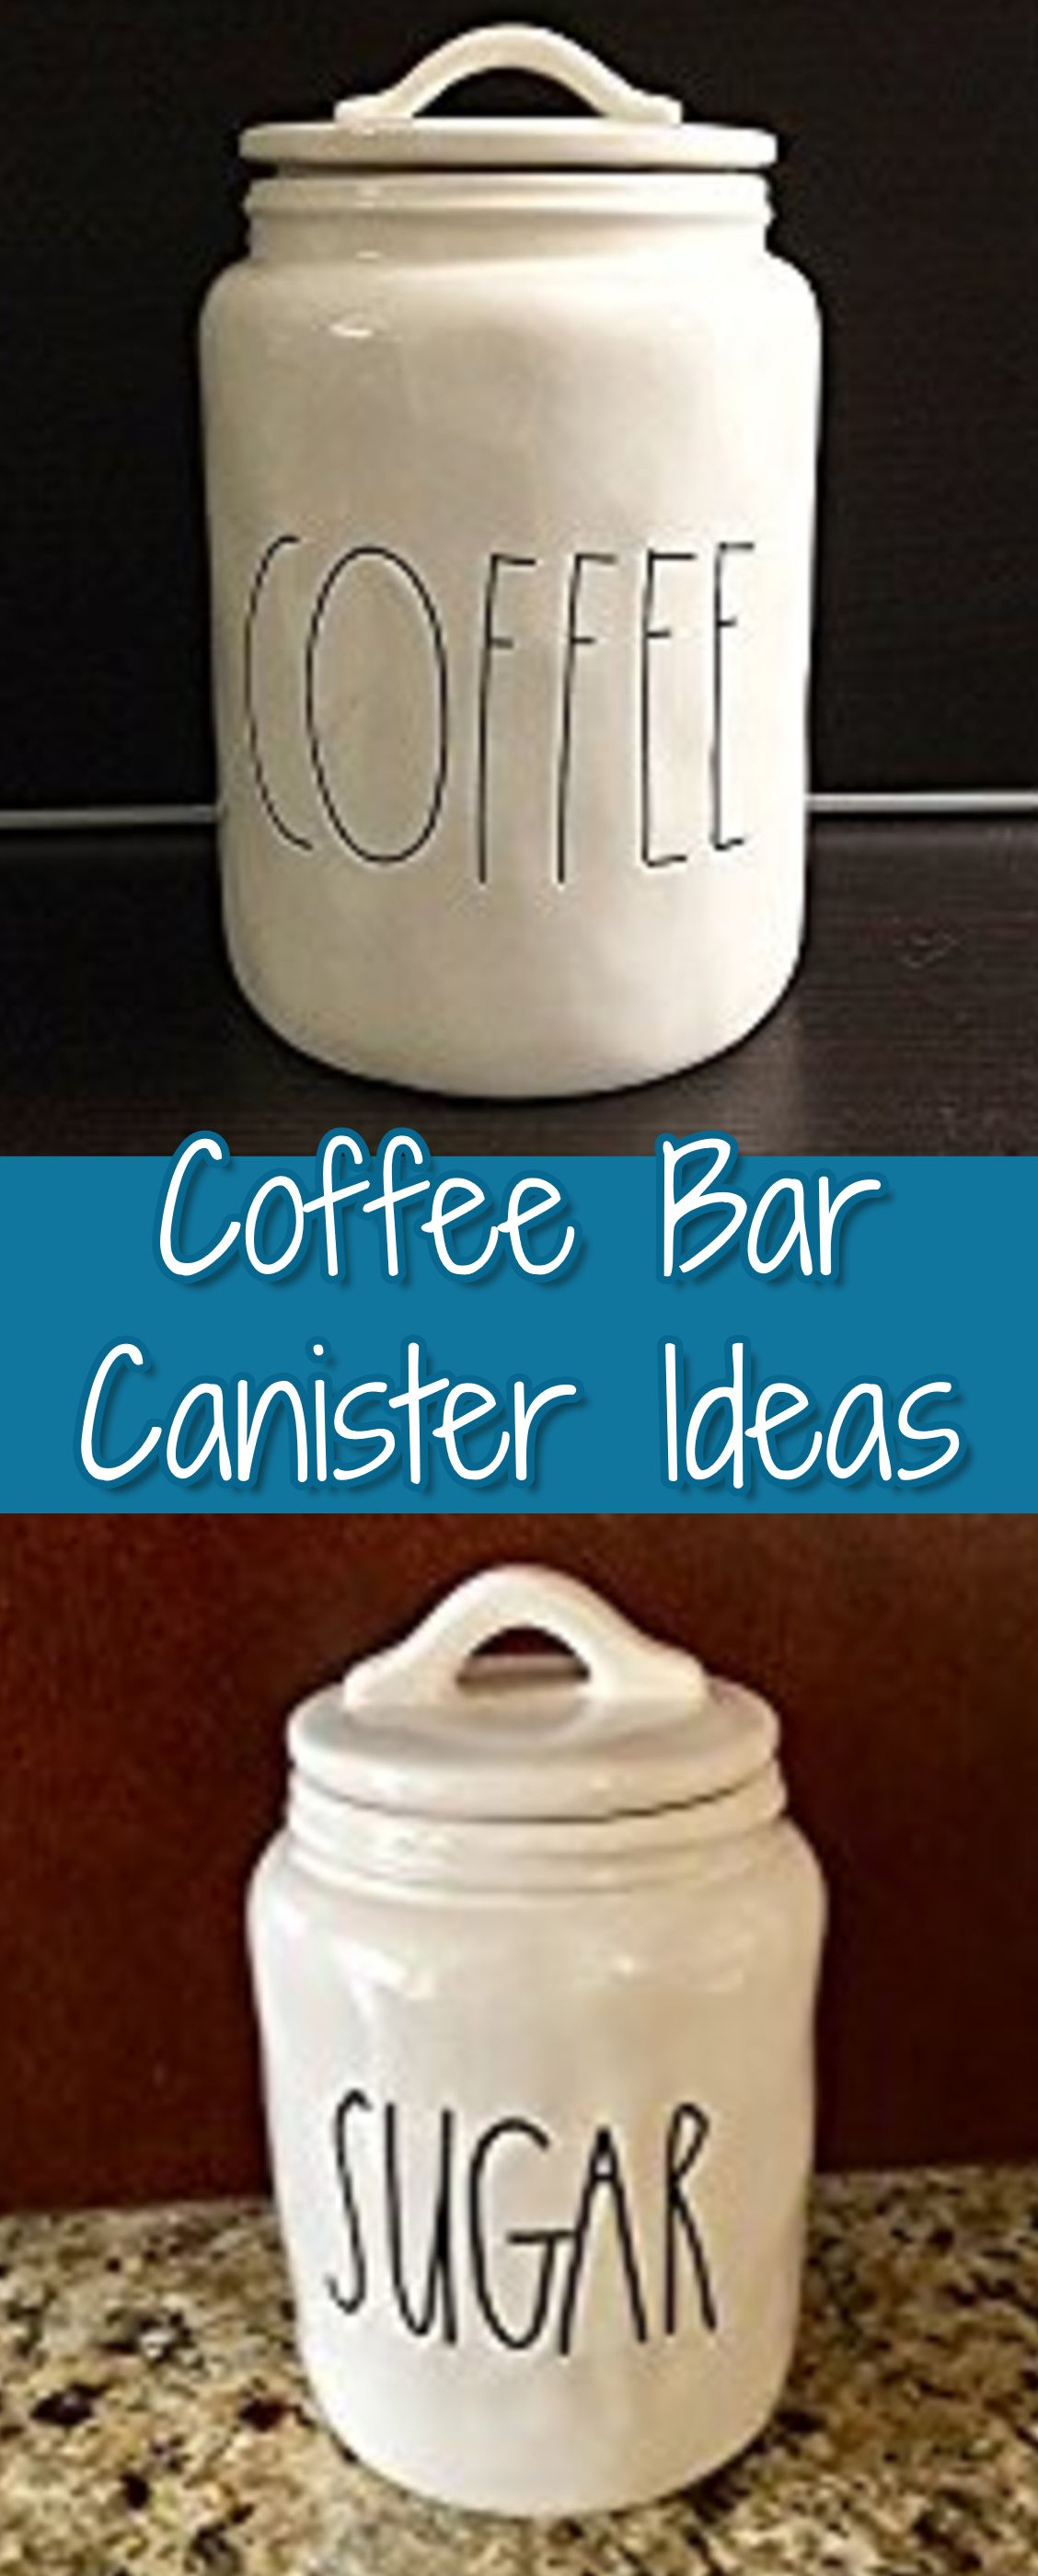 How about some cute canisters for your coffee station? Here are some of our favorite coffee station canisters and canister sets.